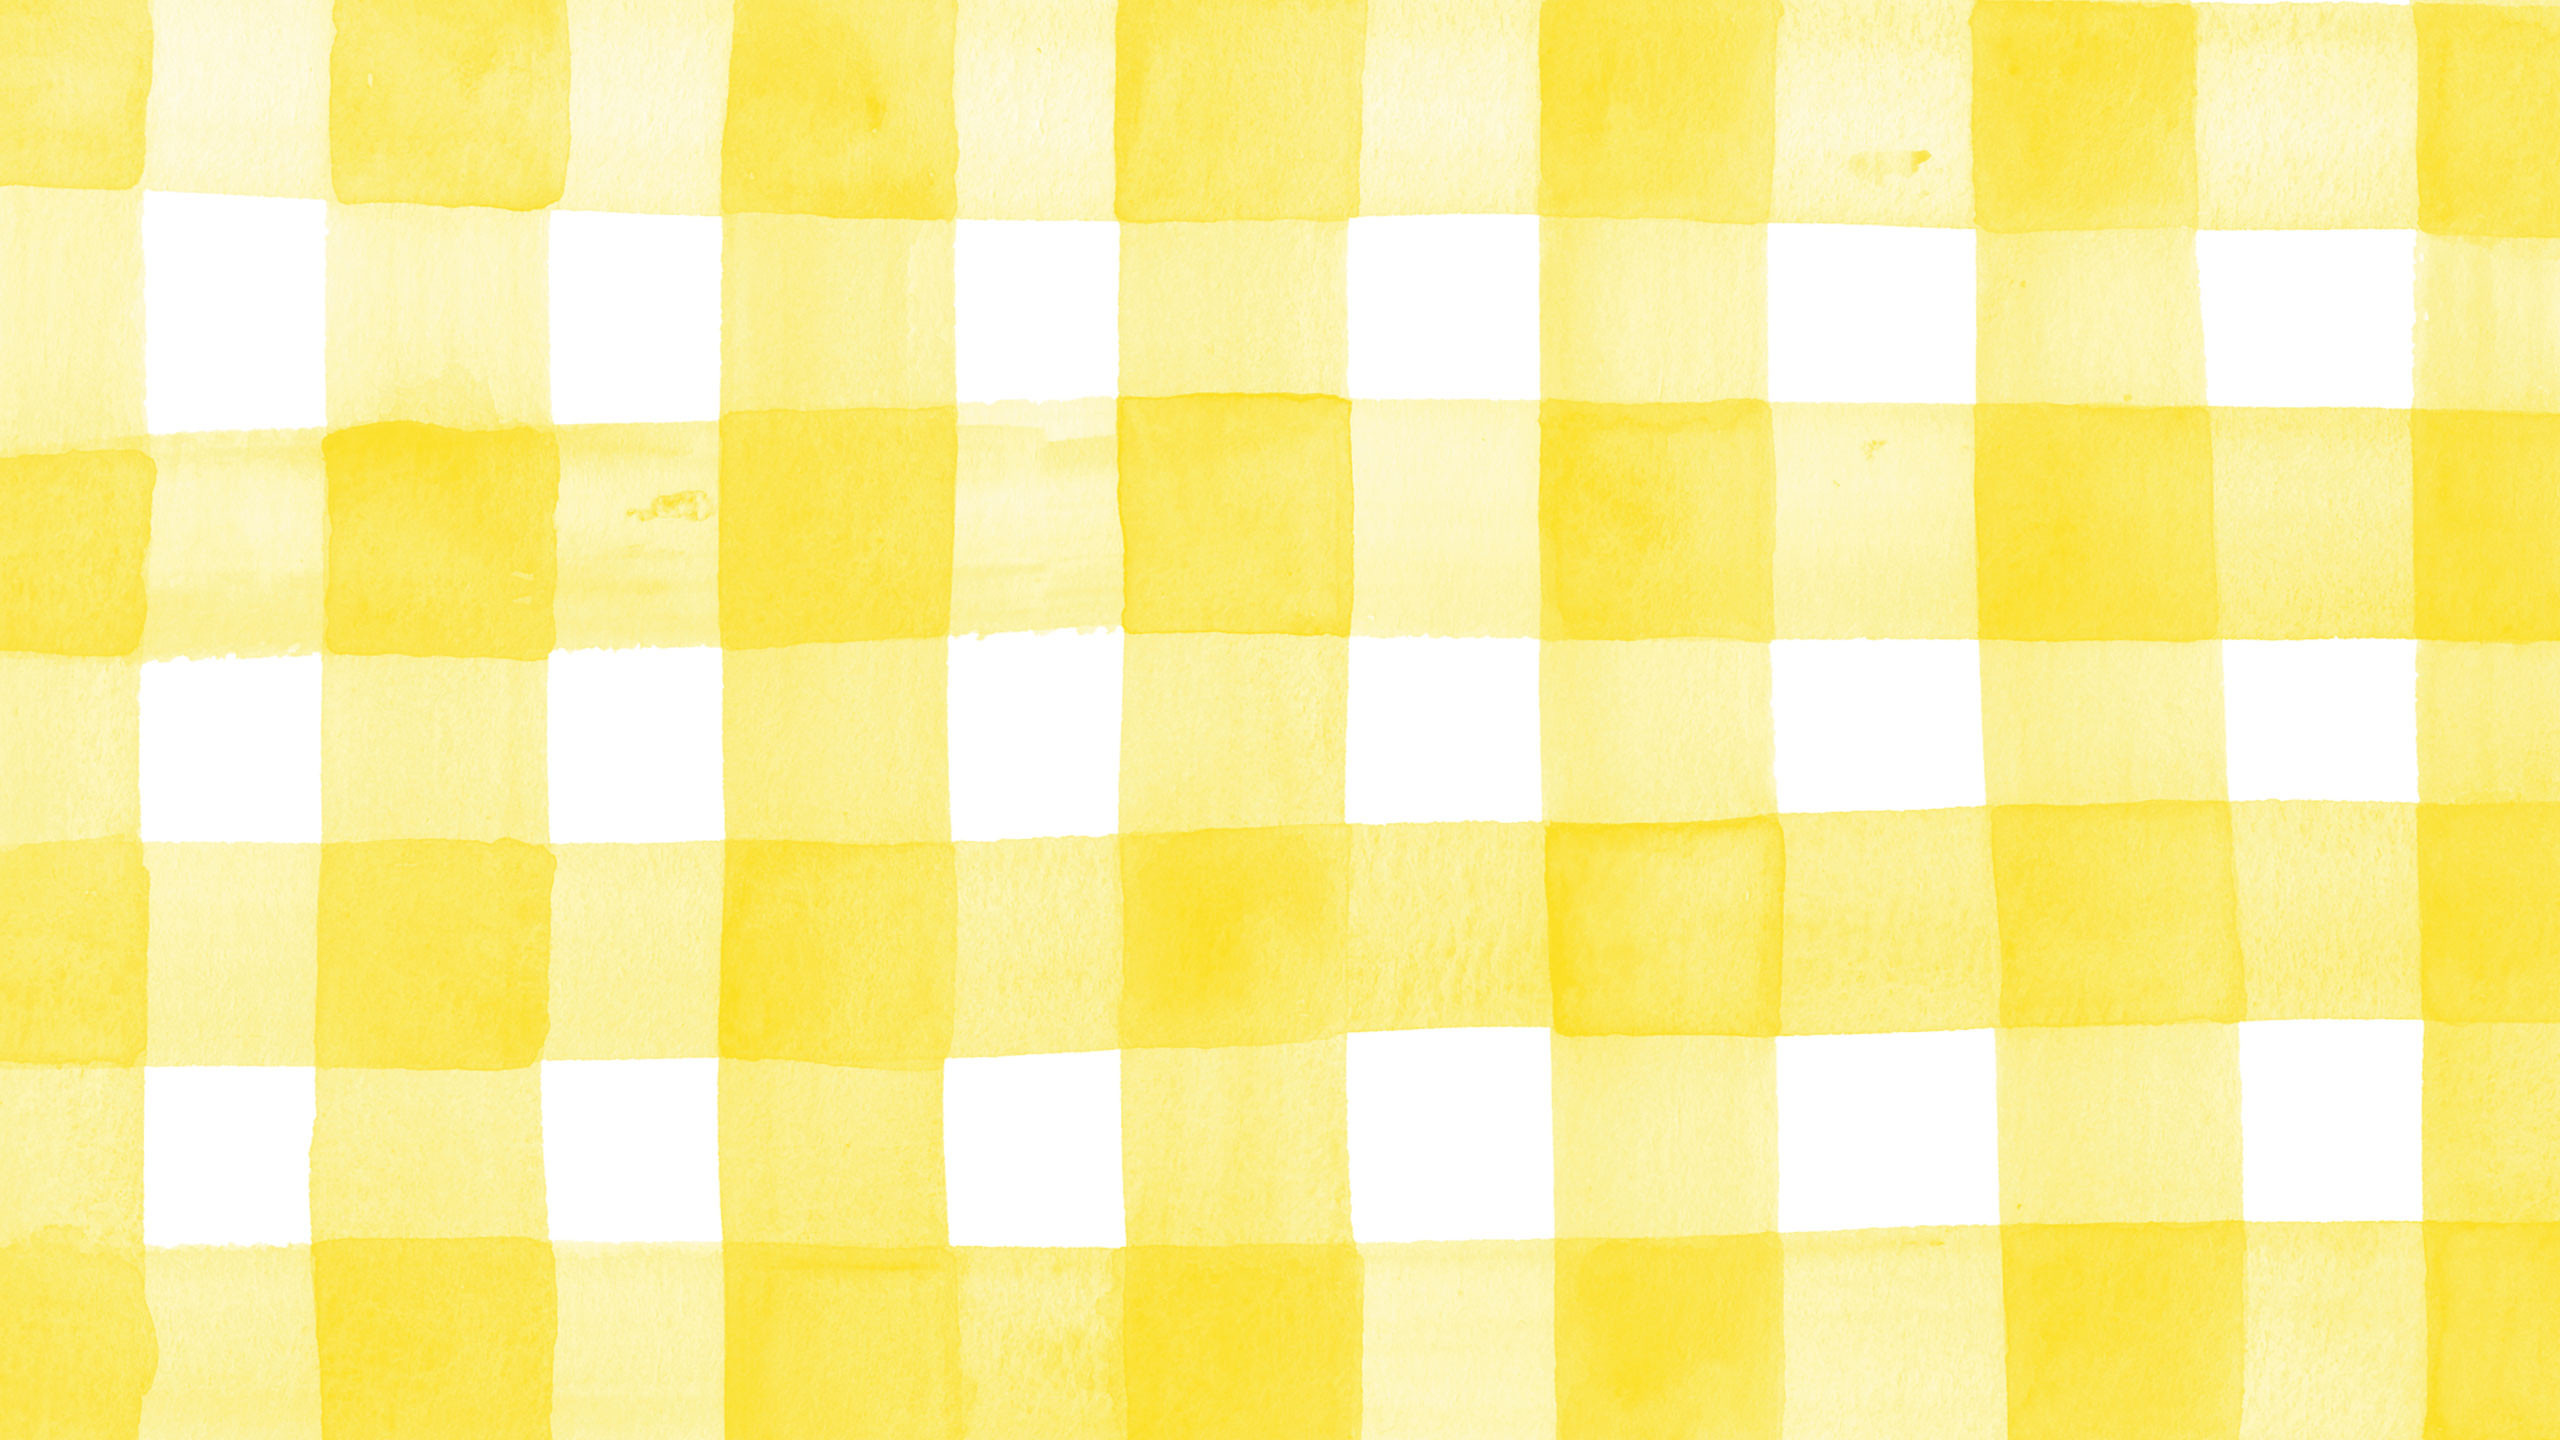 2560x1440 Yellow Checkered Wallpaper Magnificent Gingham Wallpaper